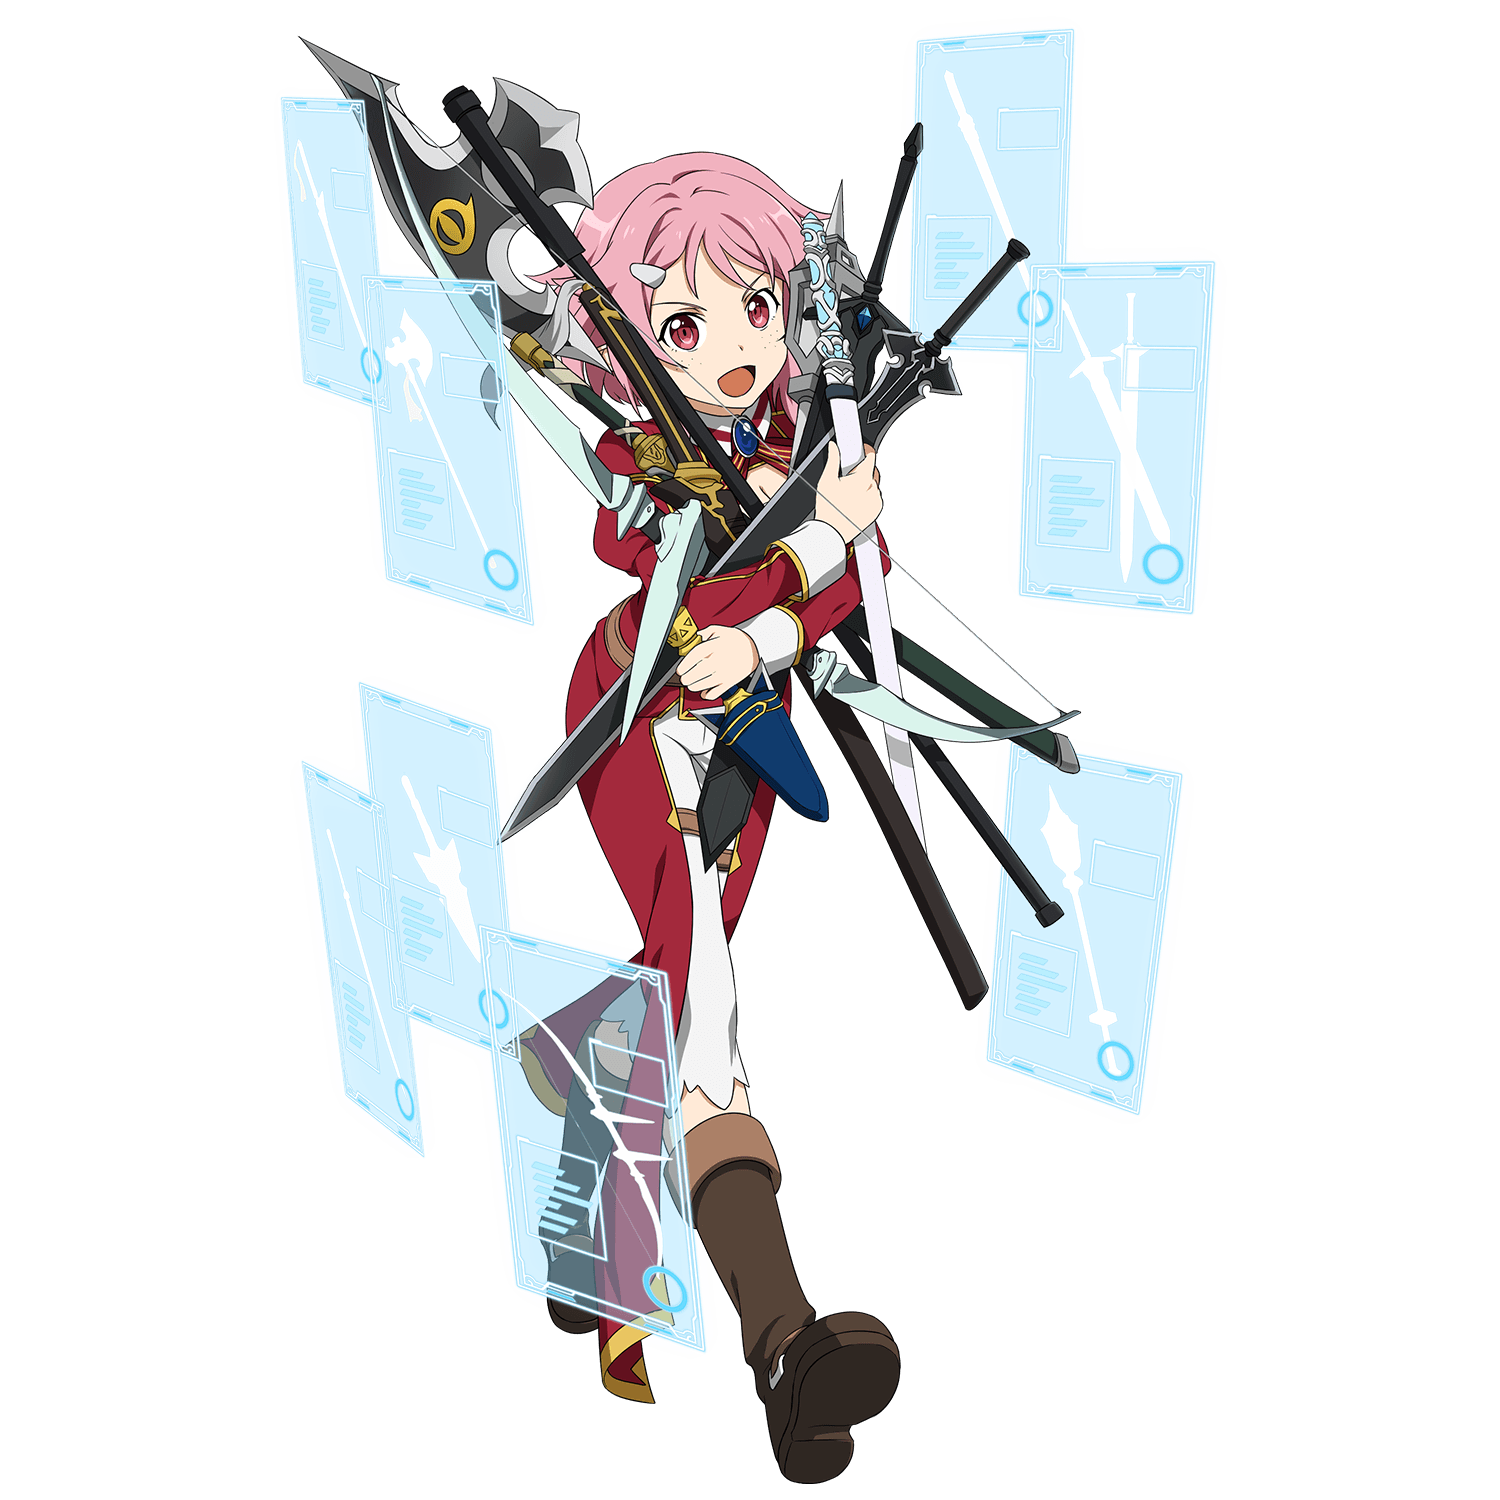 boots full_body hair_ornament hairclip highres holding holding_axe holding_sword holding_weapon interface lisbeth long_sleeves mace official_art open_mouth pink_eyes pink_hair red_eyes short_hair sword sword_art_online too_many transparent_background weapon